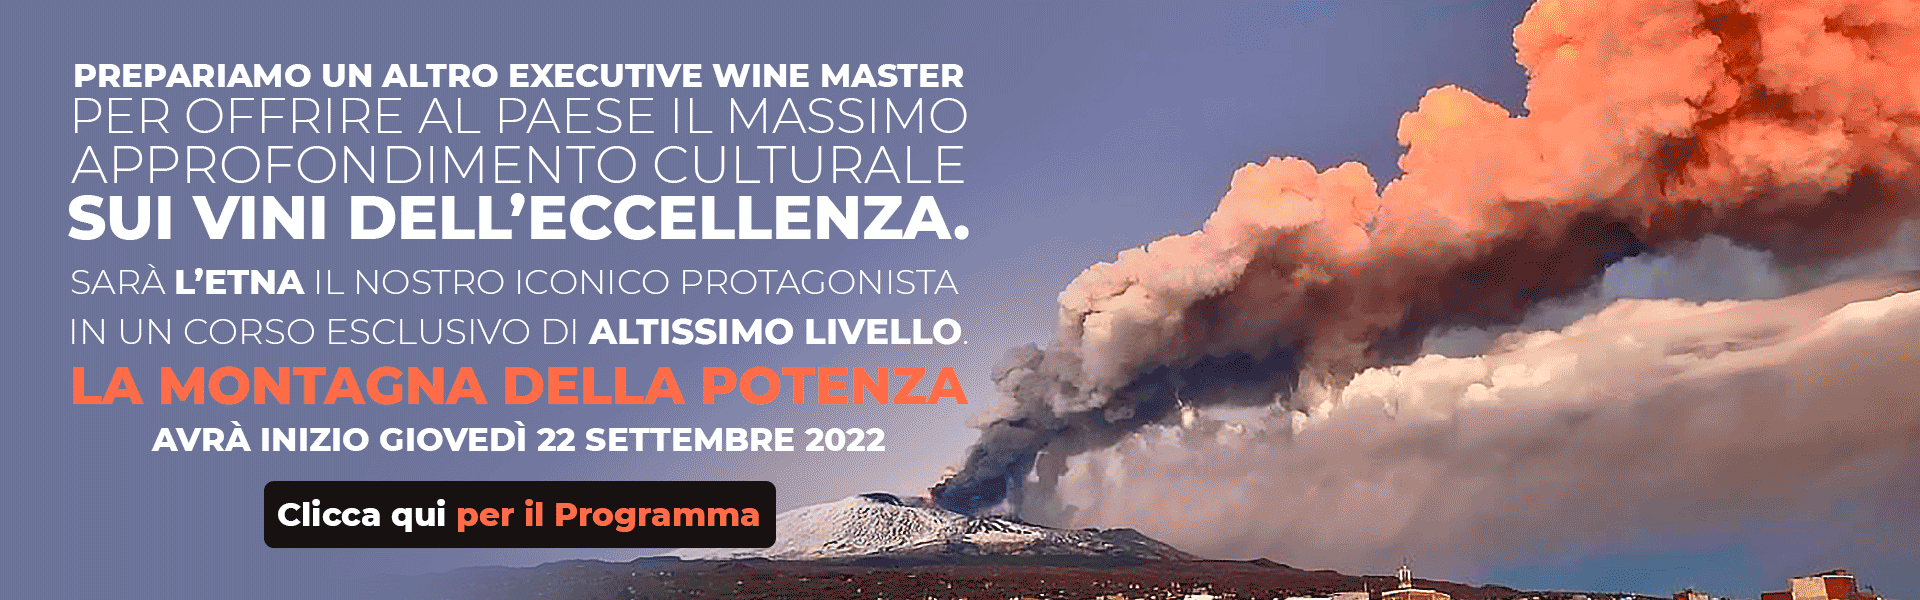 Bibenda Executive Wine Master ETNA